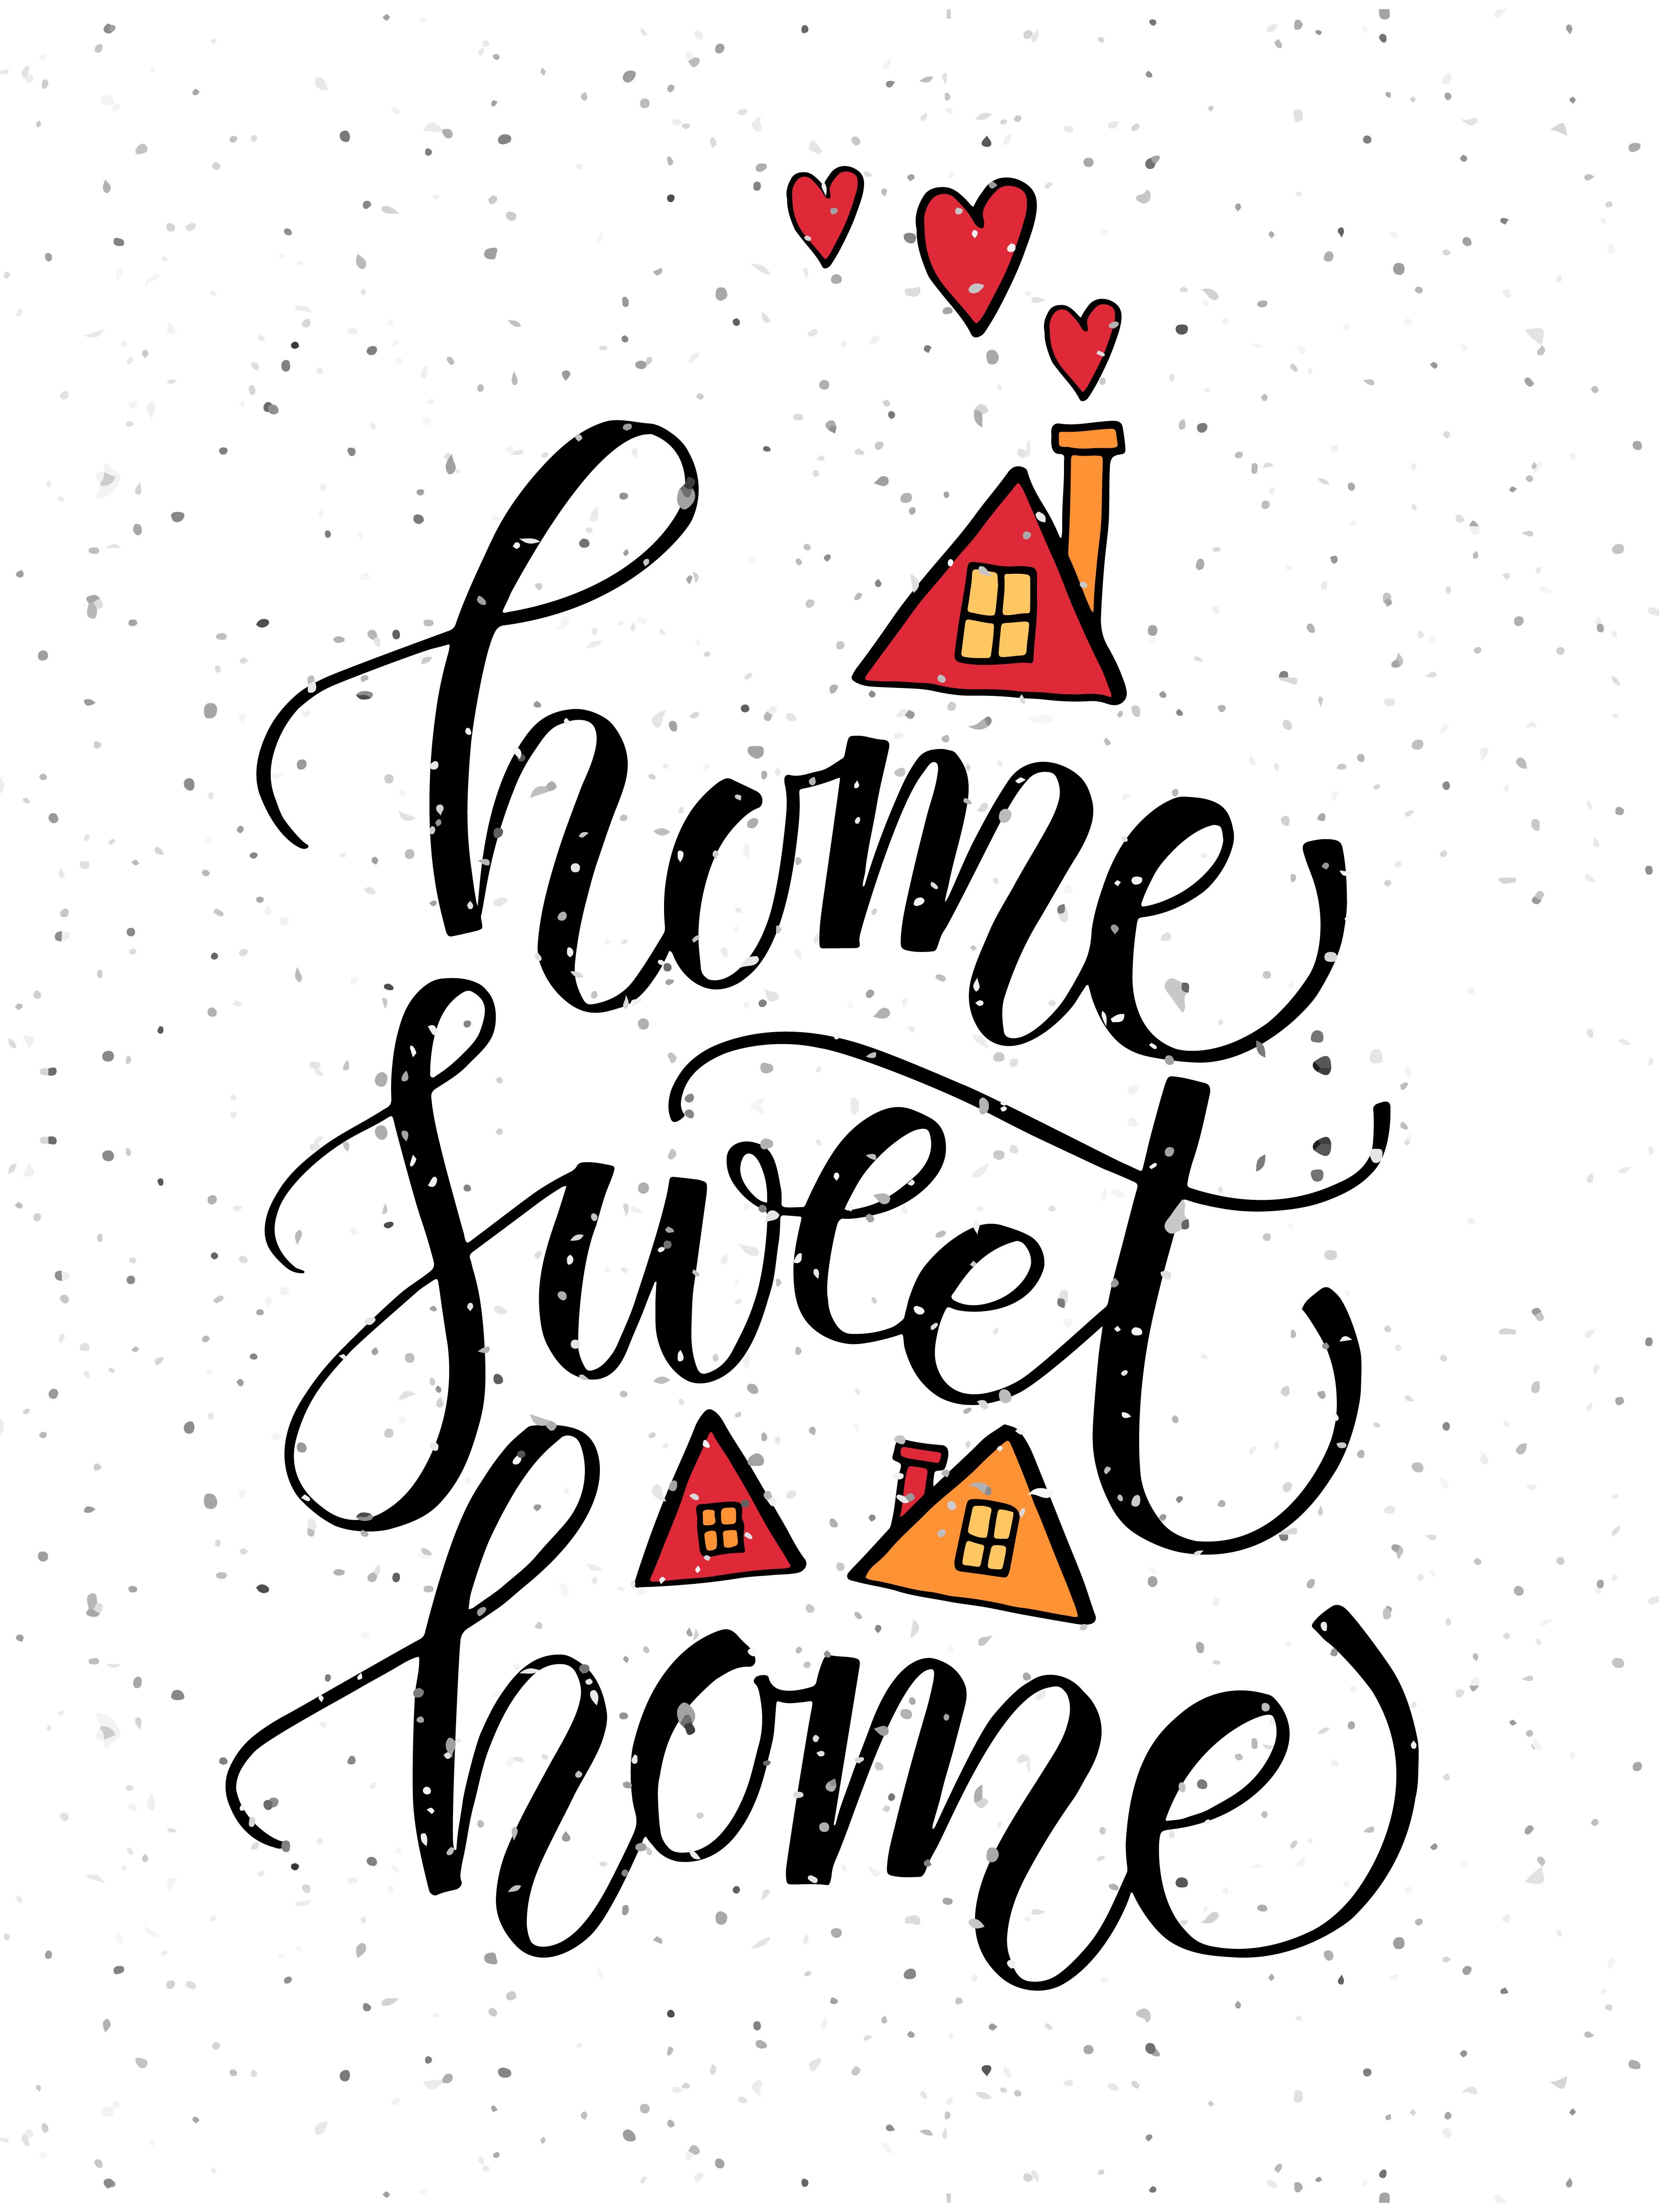 7480ac4b99c9 Home Sweet Home Typography Poster by Alps View Art on @creativemarket